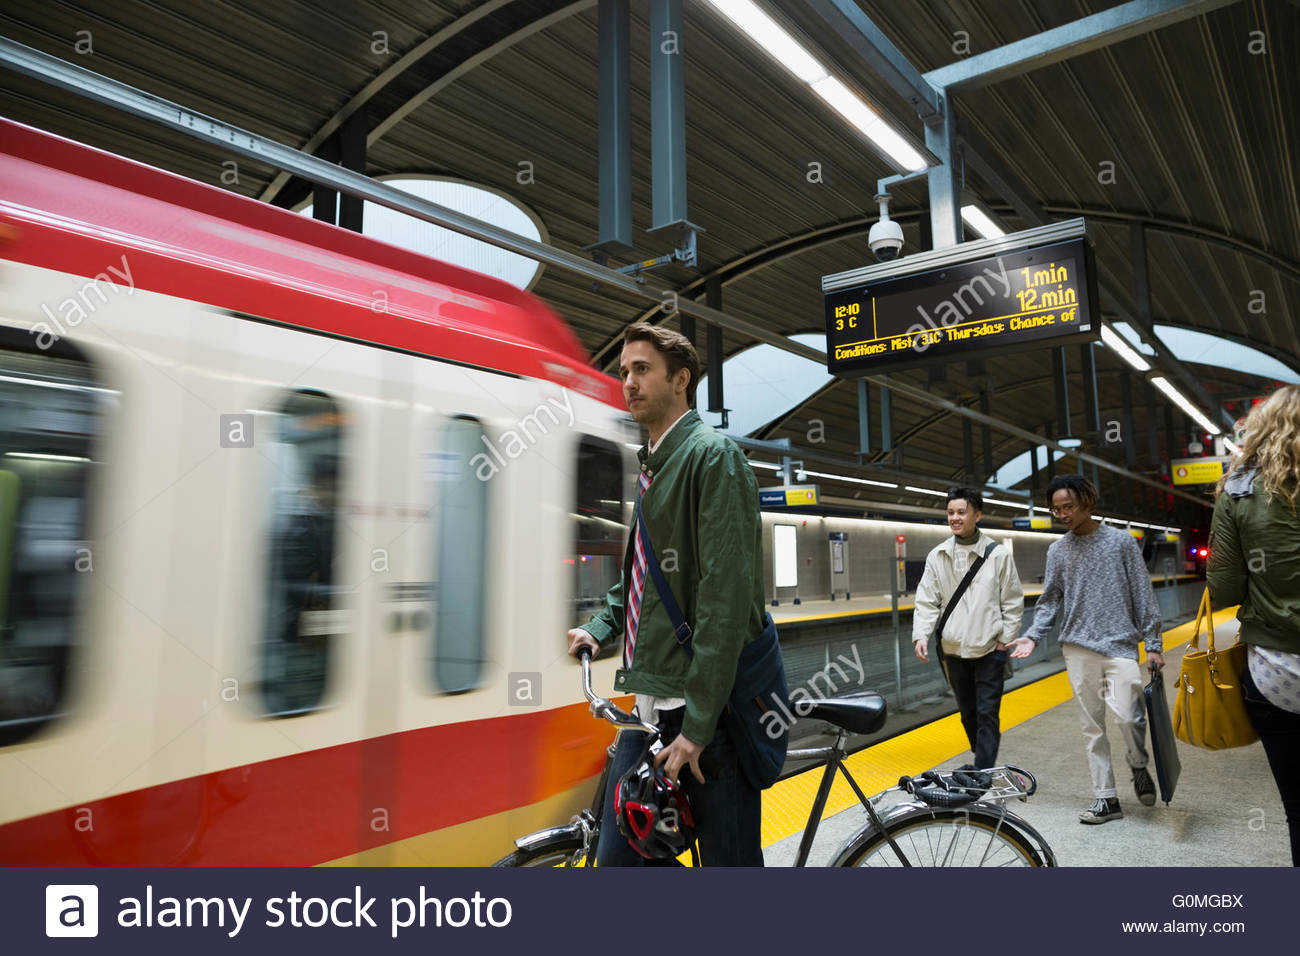 Businessman with bicycle watching arriving subway on platform - Stock Image